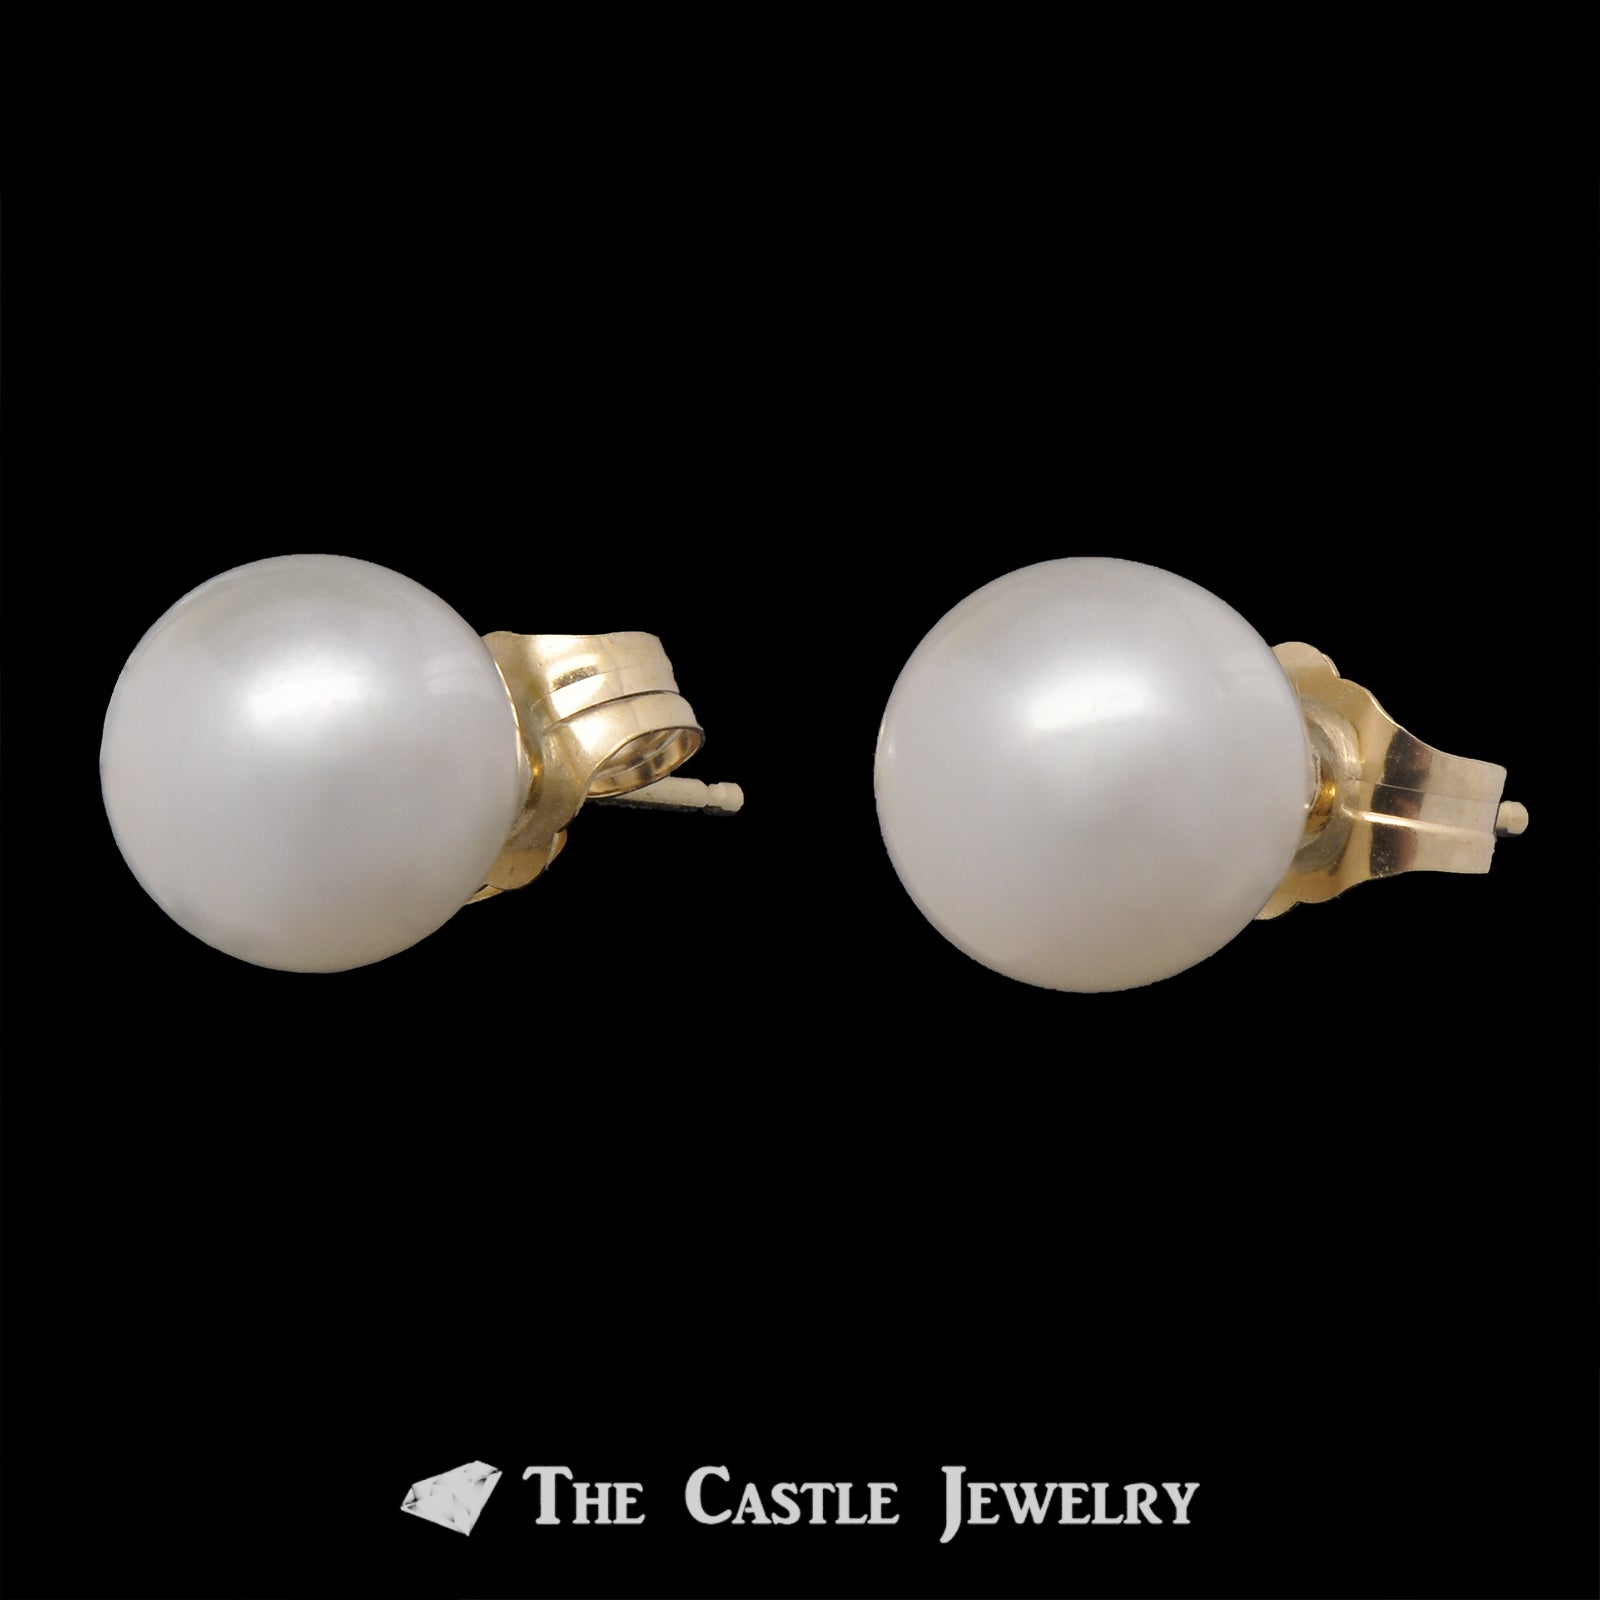 7-7.5mm Pearl Stud Earrings in 14K Gold-1